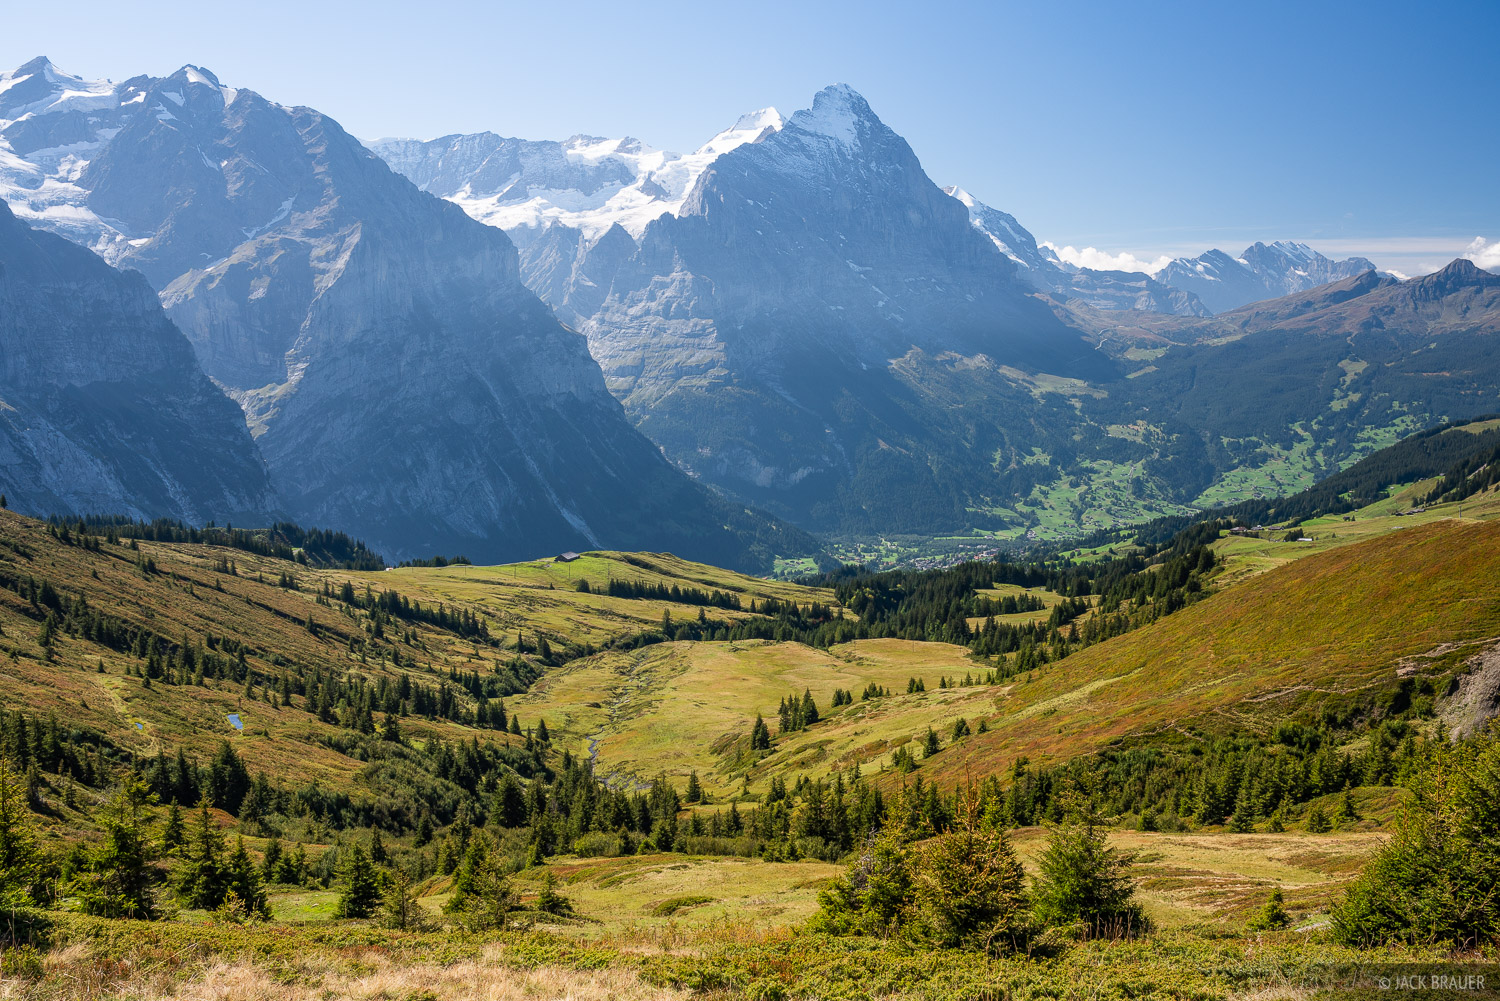 Bernese Alps, Eiger, Switzerland, Bernese Oberland, Grosse Scheidegg, Grindelwald, Alps, photo